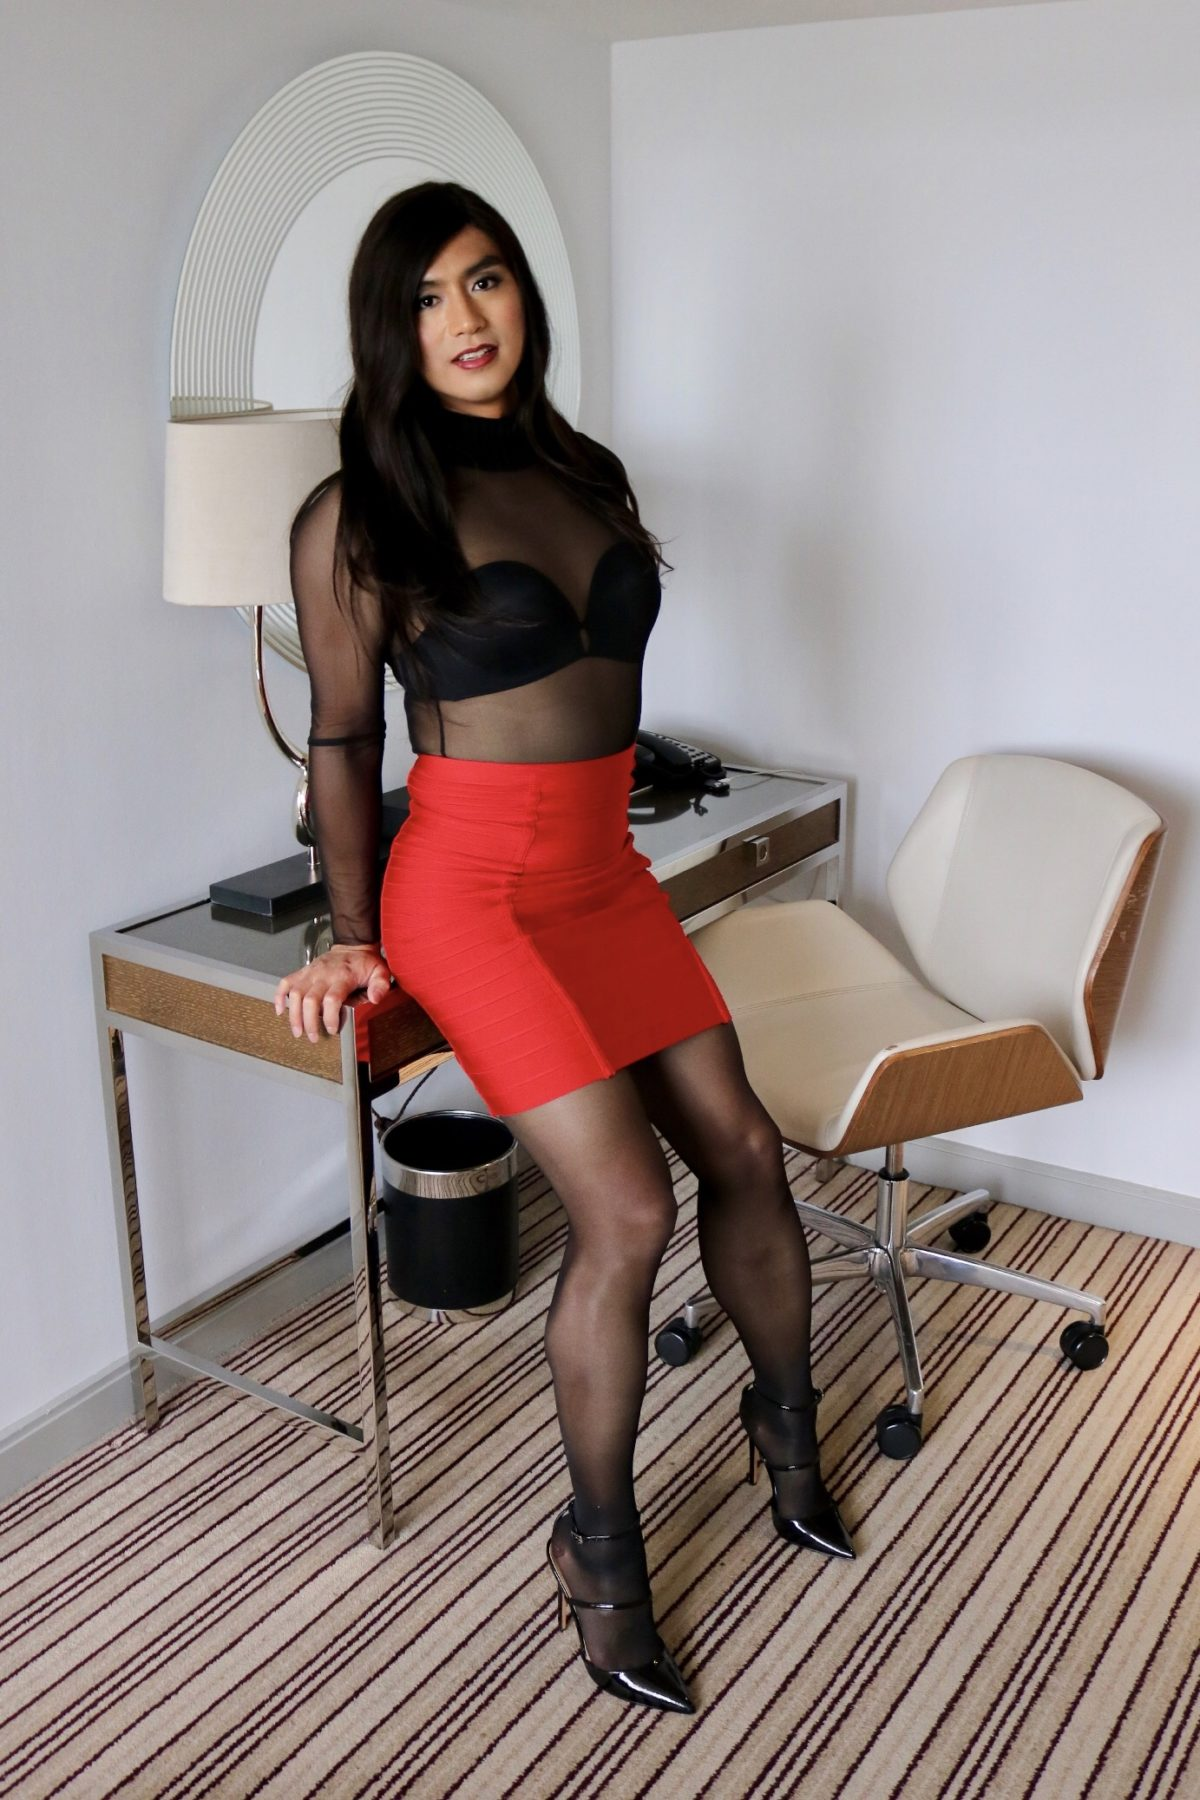 Alina teasing in black mesh bodysuit sheer pantyhose, red bandage skirt with full back zip and CFM heels